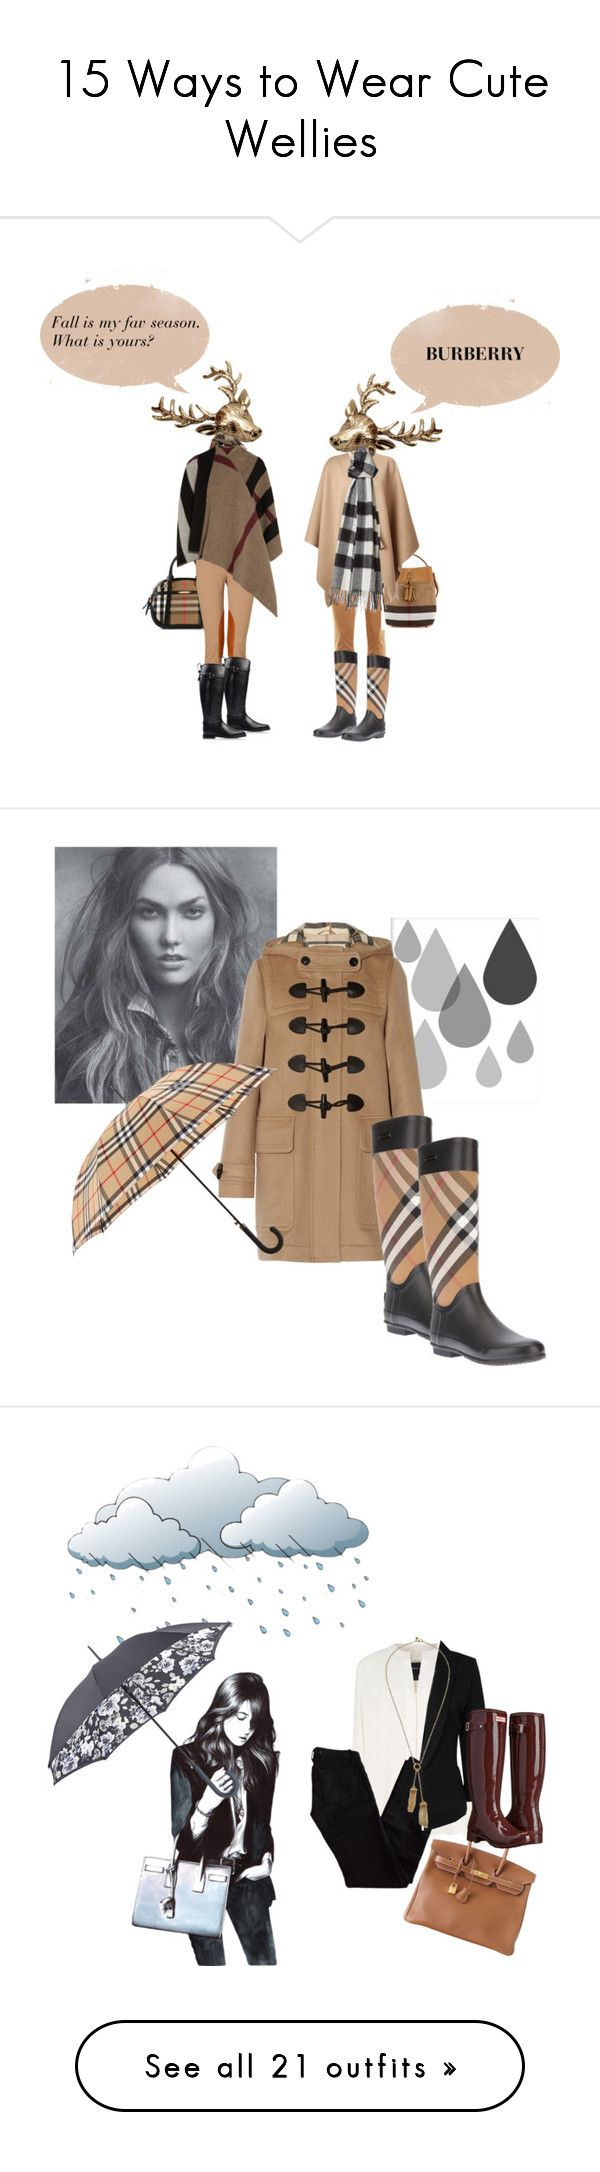 """""""15 Ways to Wear Cute Wellies"""" by polyvore-editorial ❤ liked on Polyvore featuring rainboots, Wellies, waystowear, J Brand, Burberry, Michael Kors, Wildfox, shoes, boots and black rain boots"""